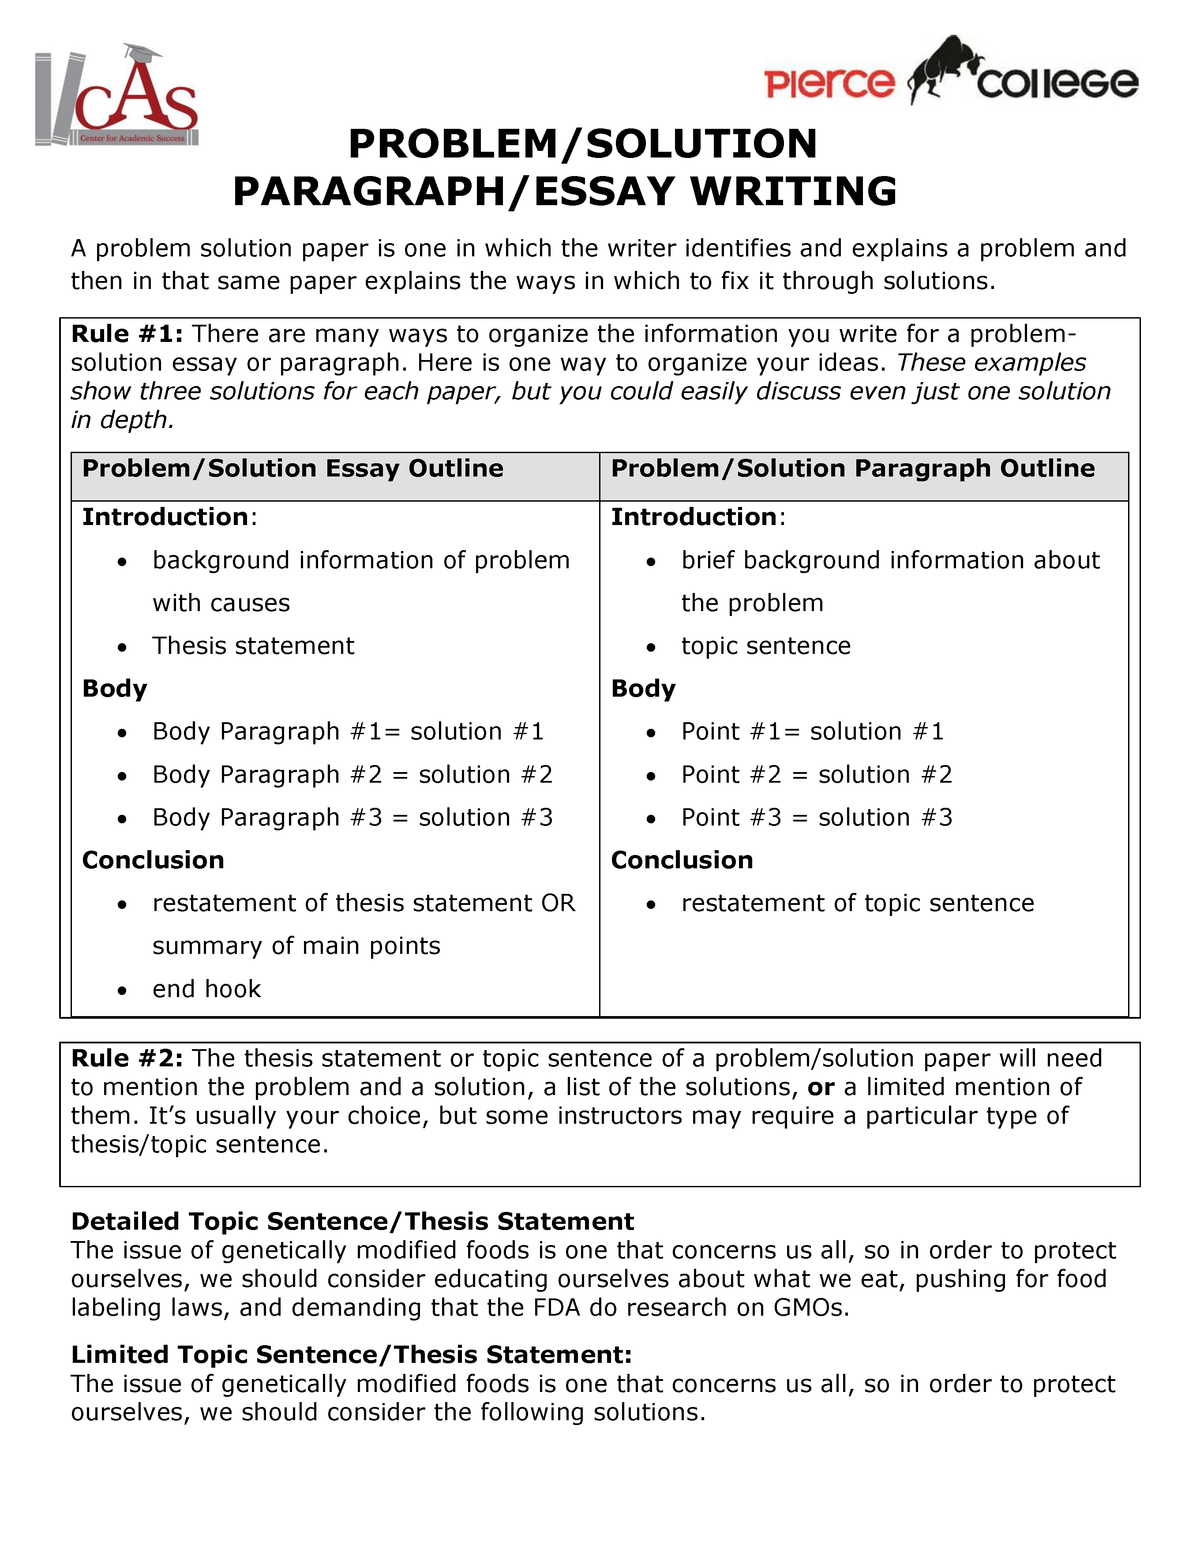 Essay Topics For High School English  Essay Writing Scholarships For High School Students also Essay On Terrorism In English Problem Solution Paragraph Essay Writing   Eng  English  Religion And Science Essay